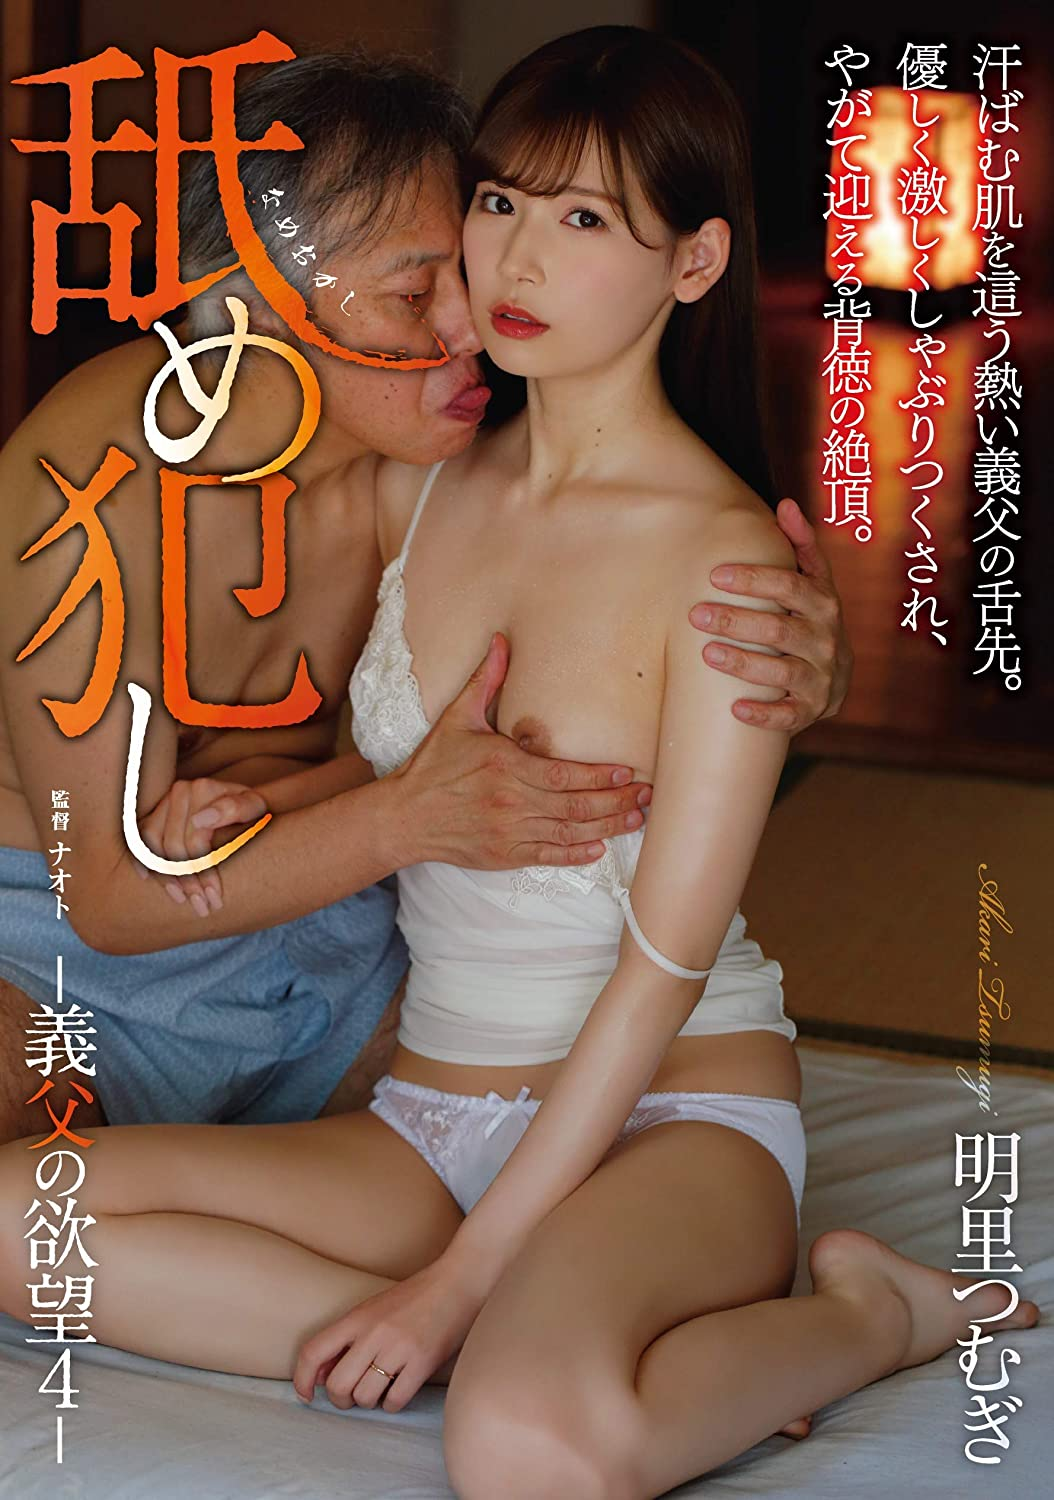 [ATID-379] (English subbed) Licking R**e A Father-In-Law's Lust 4 Tsumugi Akari